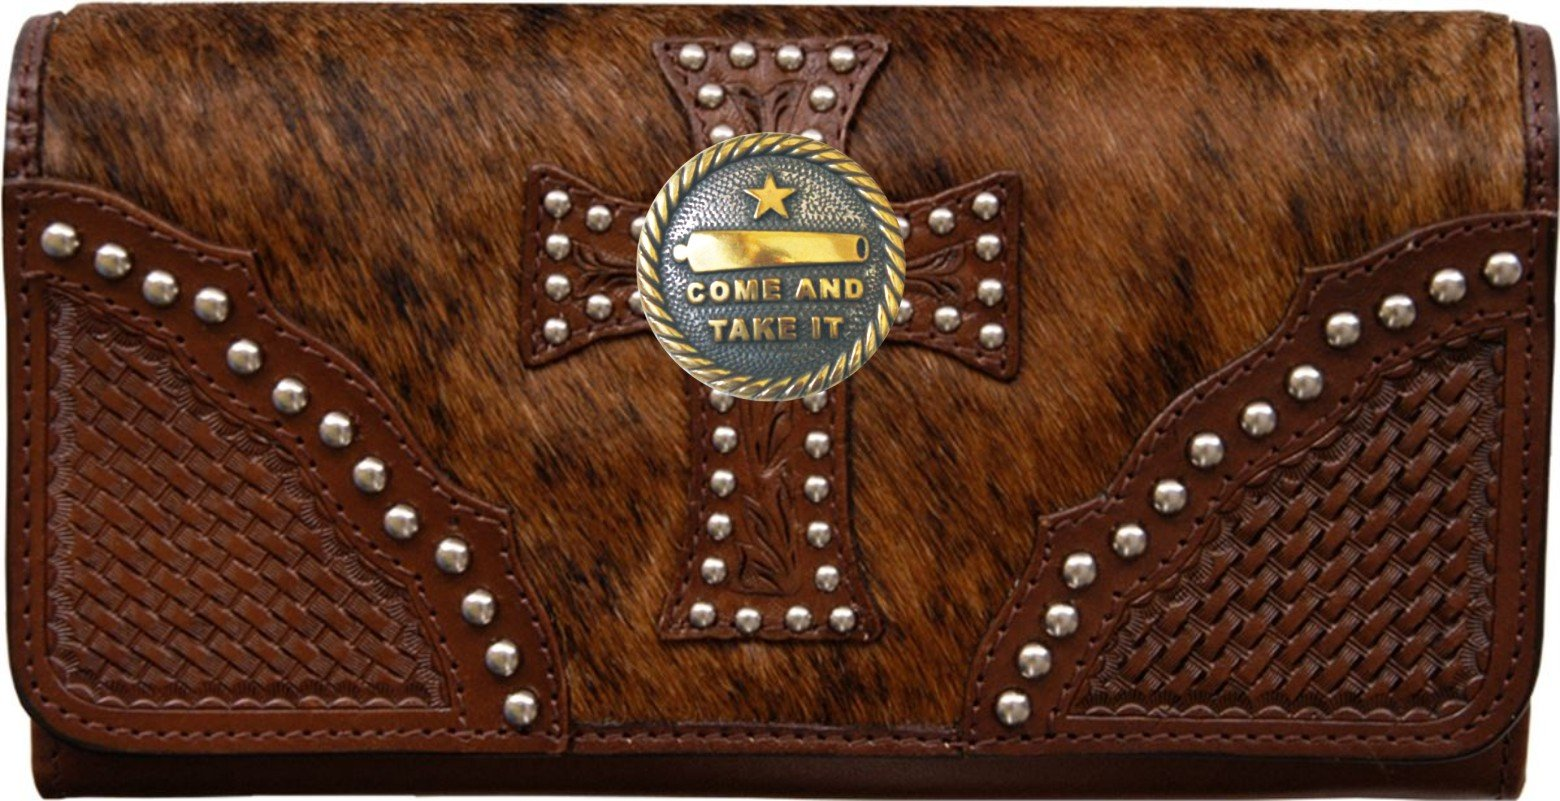 Custom Come and Take It Natural Hair Christian Clutch Wallet with removable checkbook